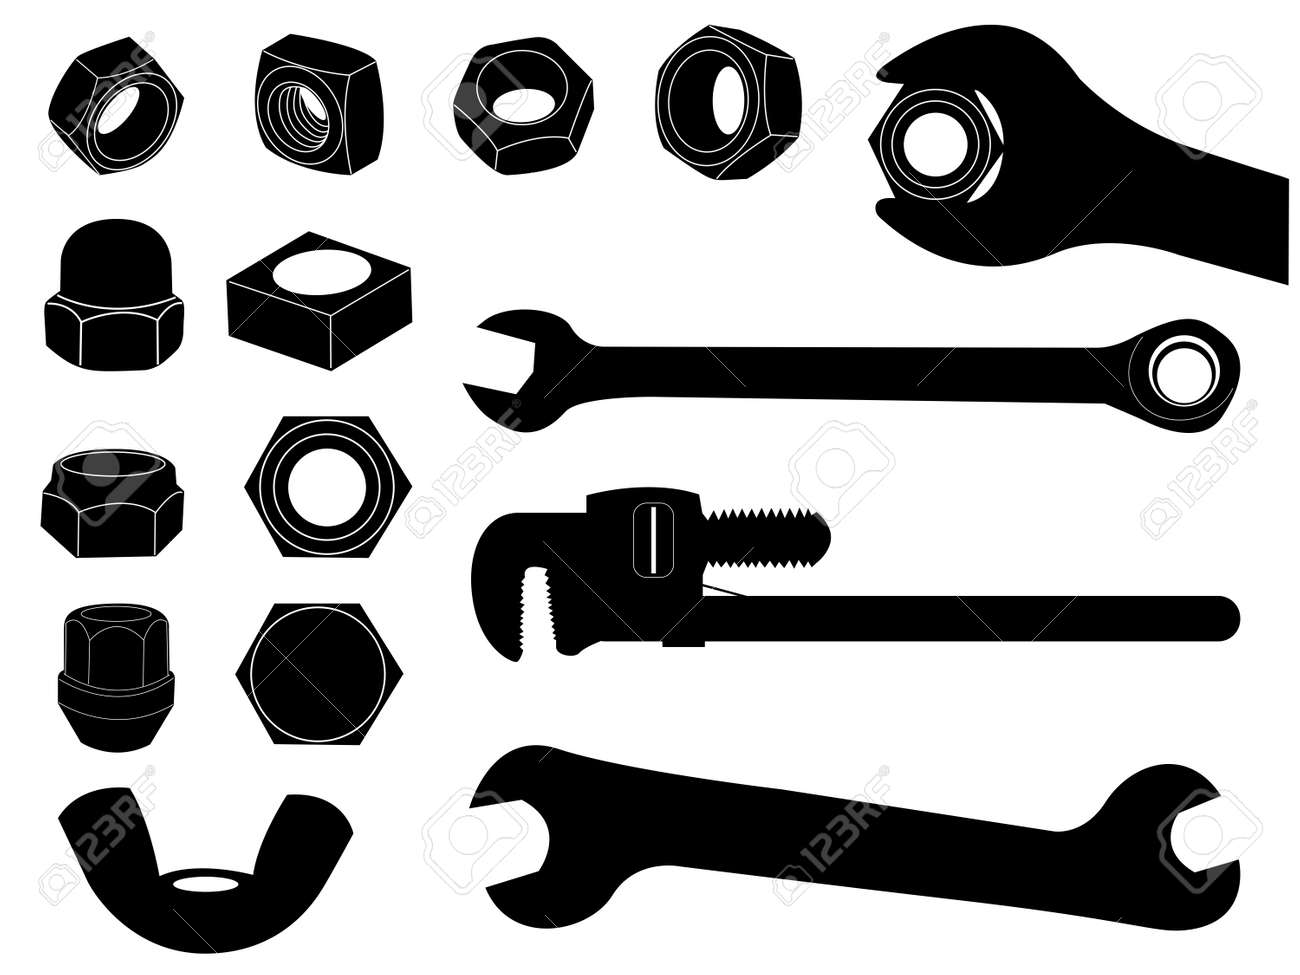 Wrench Black Vector wrench outline Screw nut and